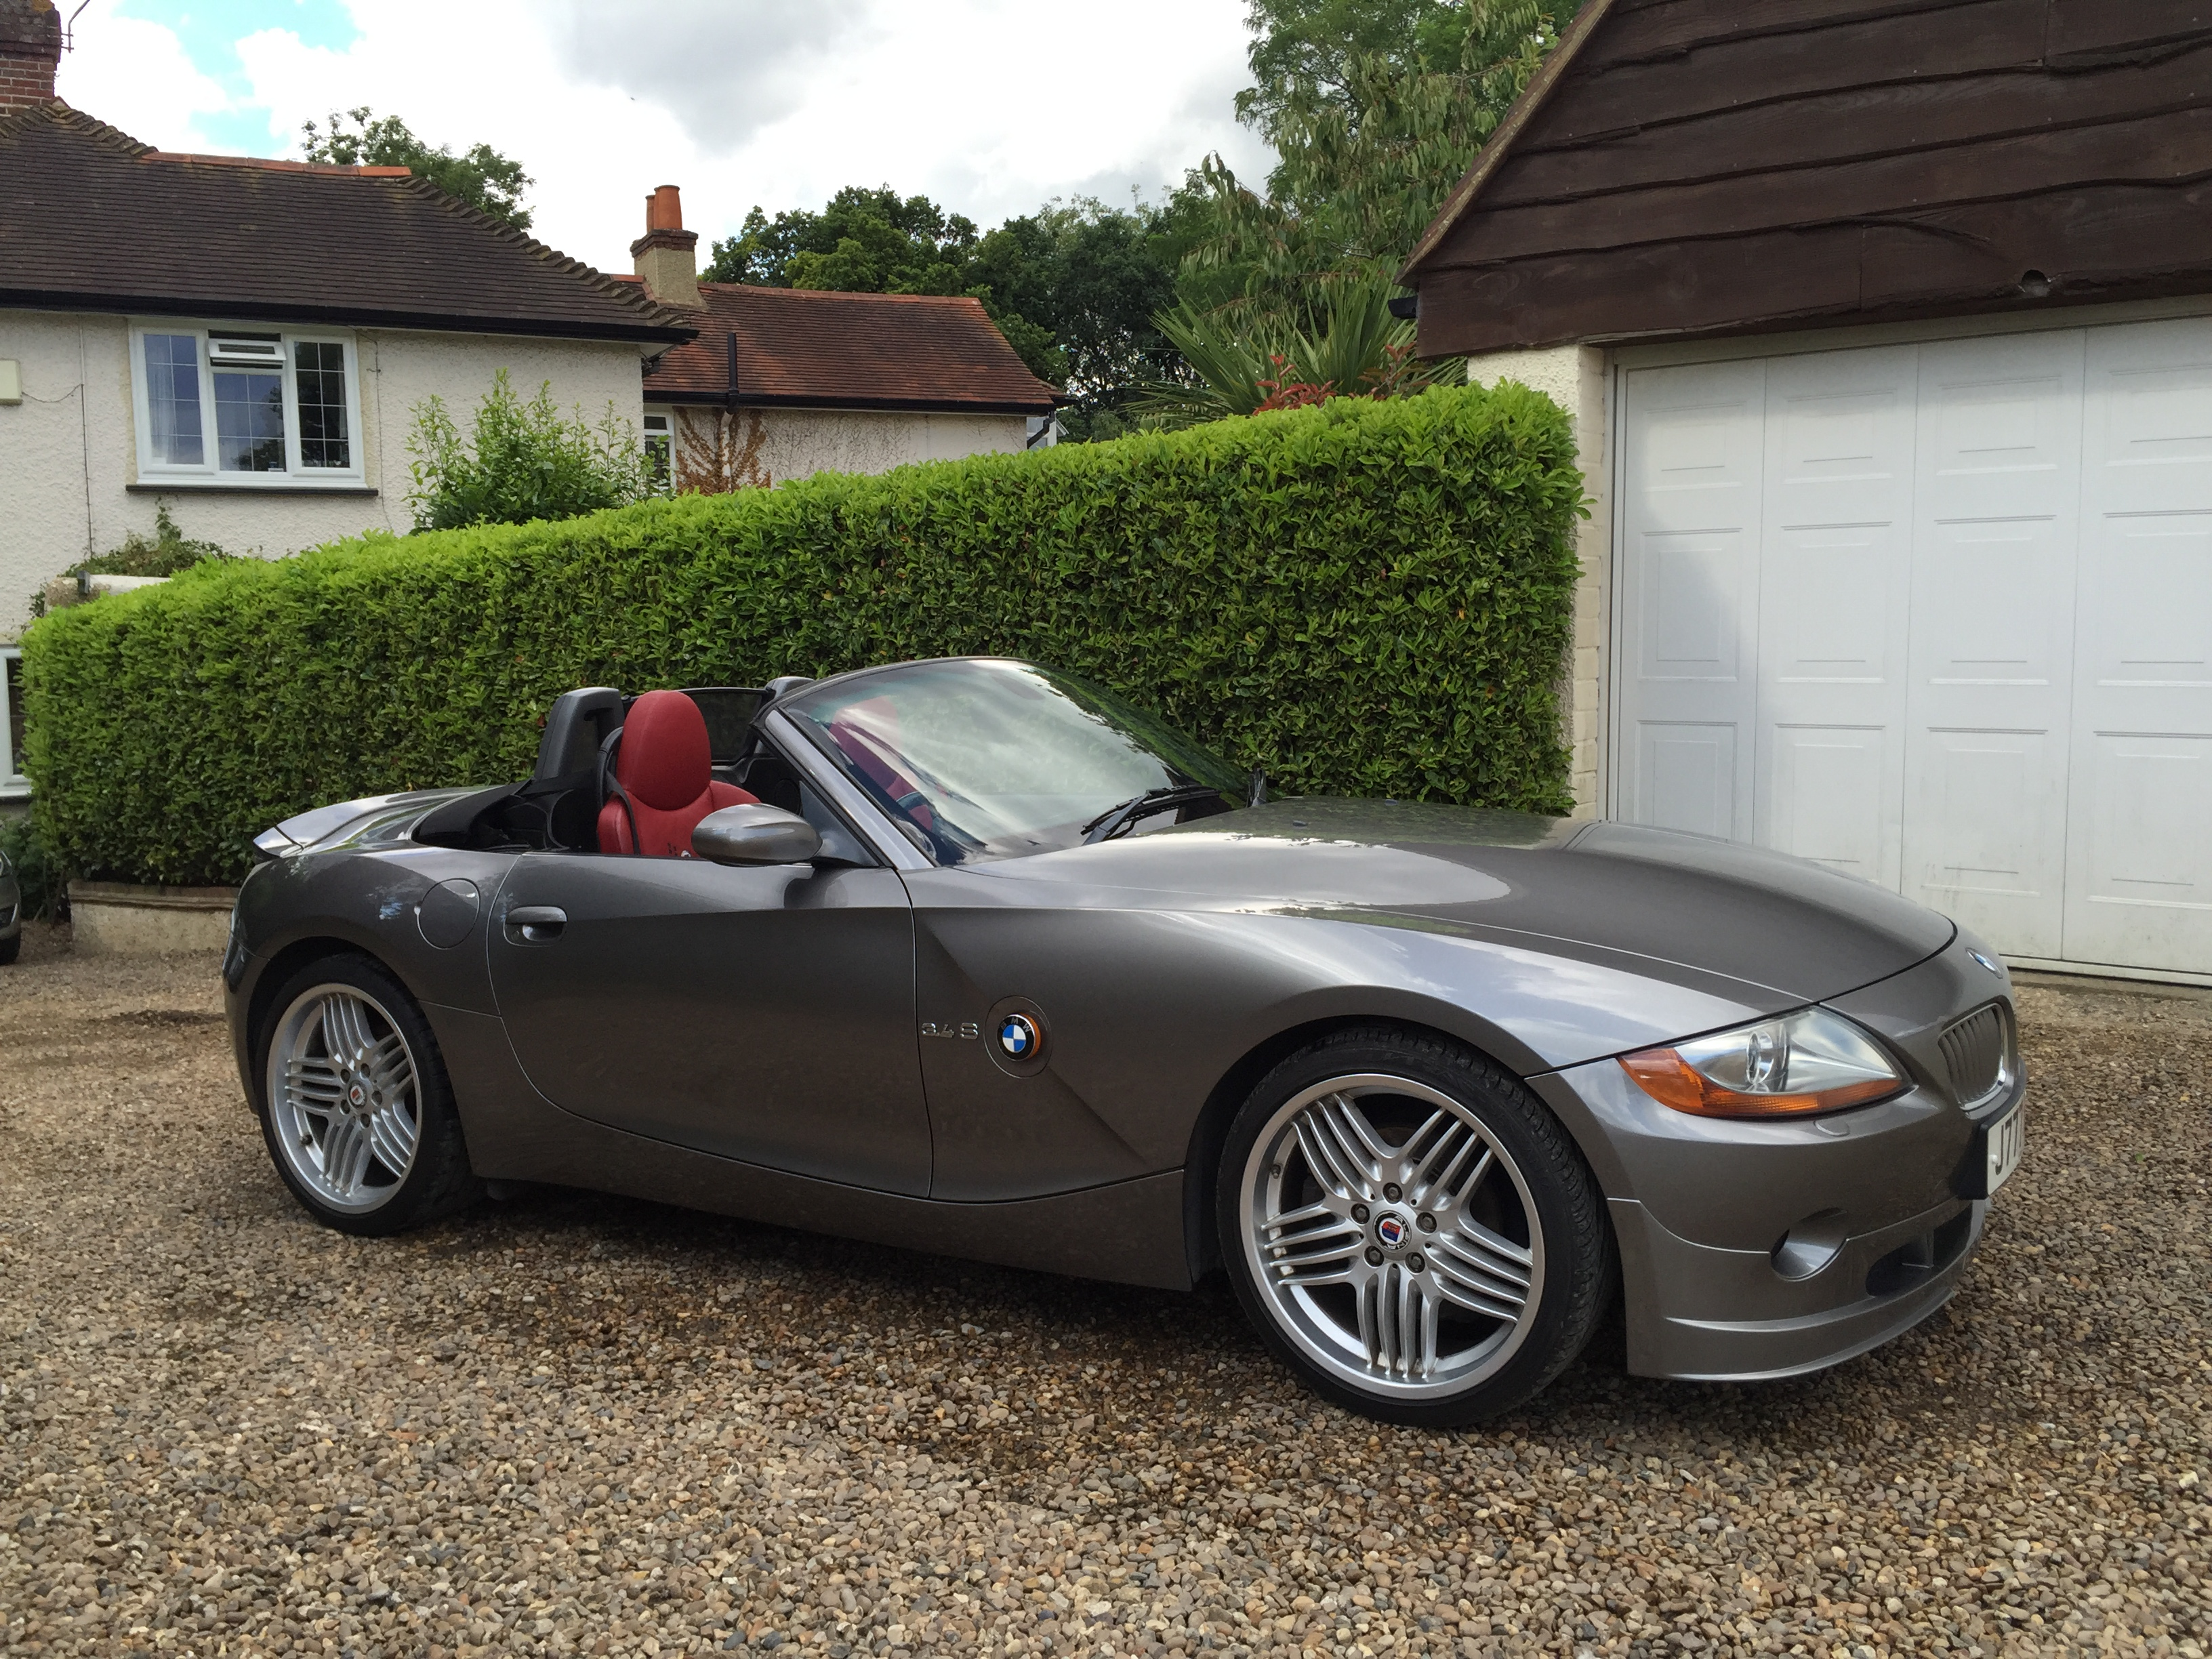 bmw z4 3 4s alpina roadster 6 speed manual gs vehicle servcies. Black Bedroom Furniture Sets. Home Design Ideas